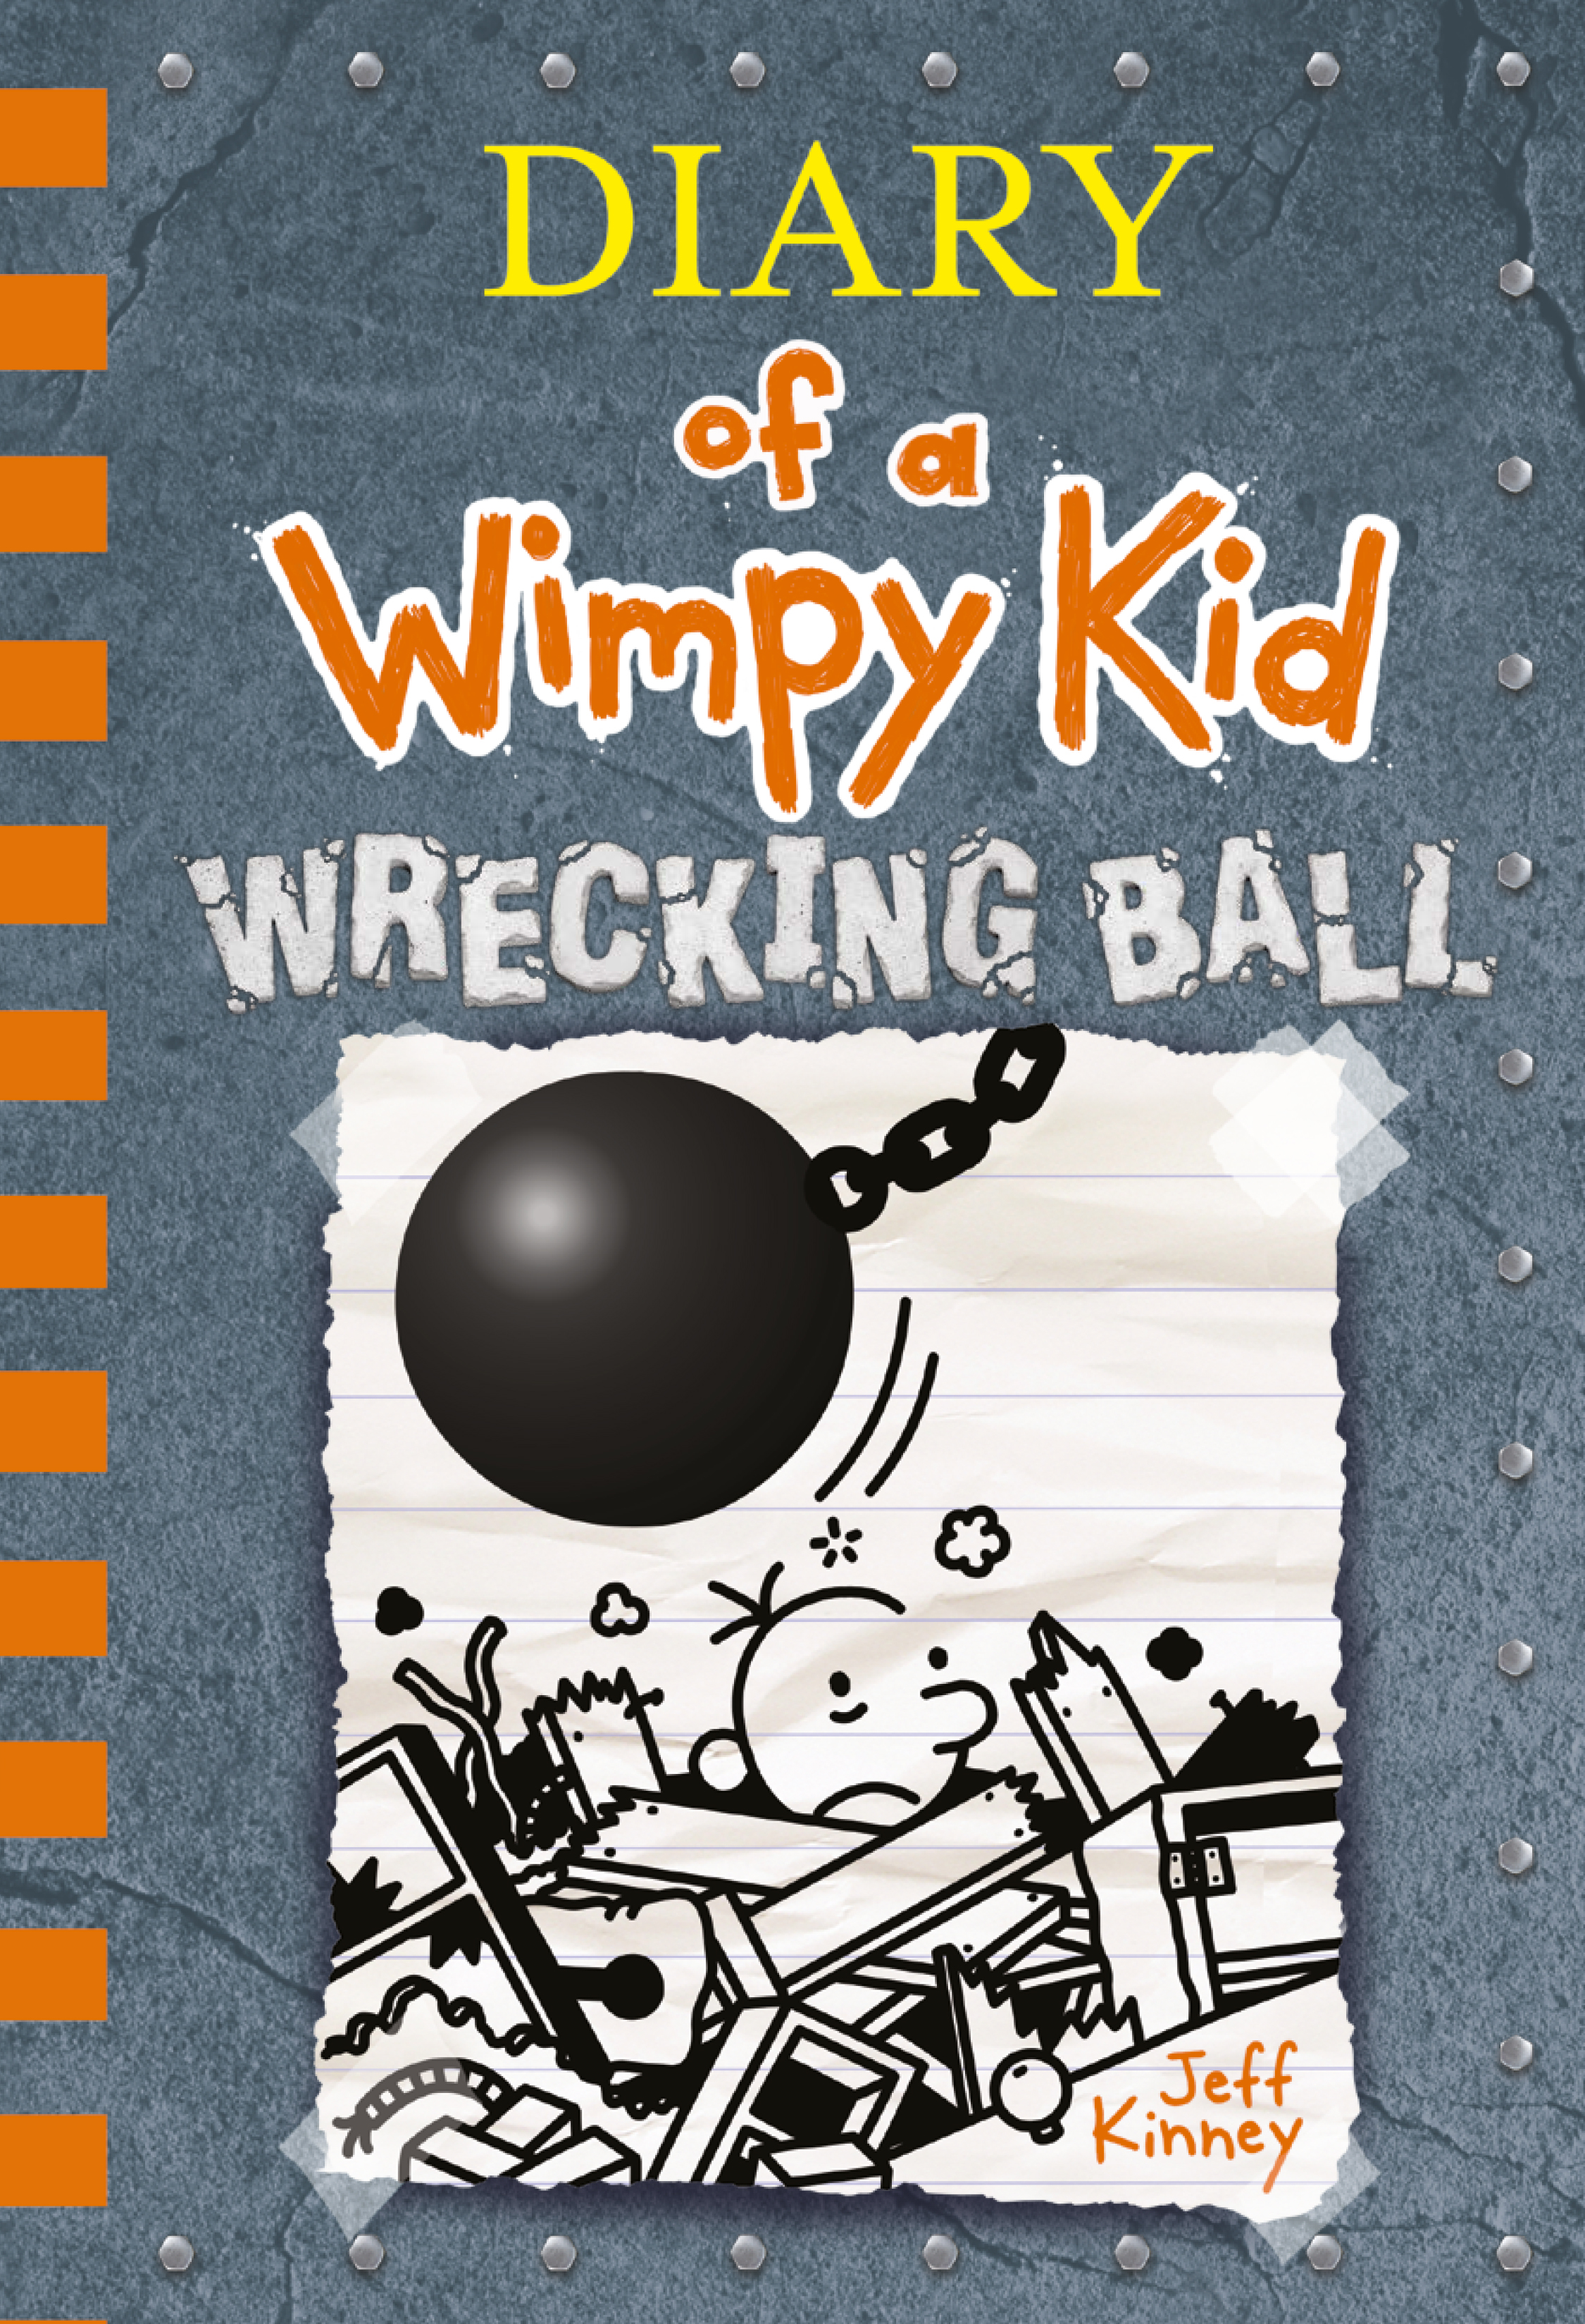 Diary of a wimpy kid [electronic resource (downloadable eBook)] : wrecking ball